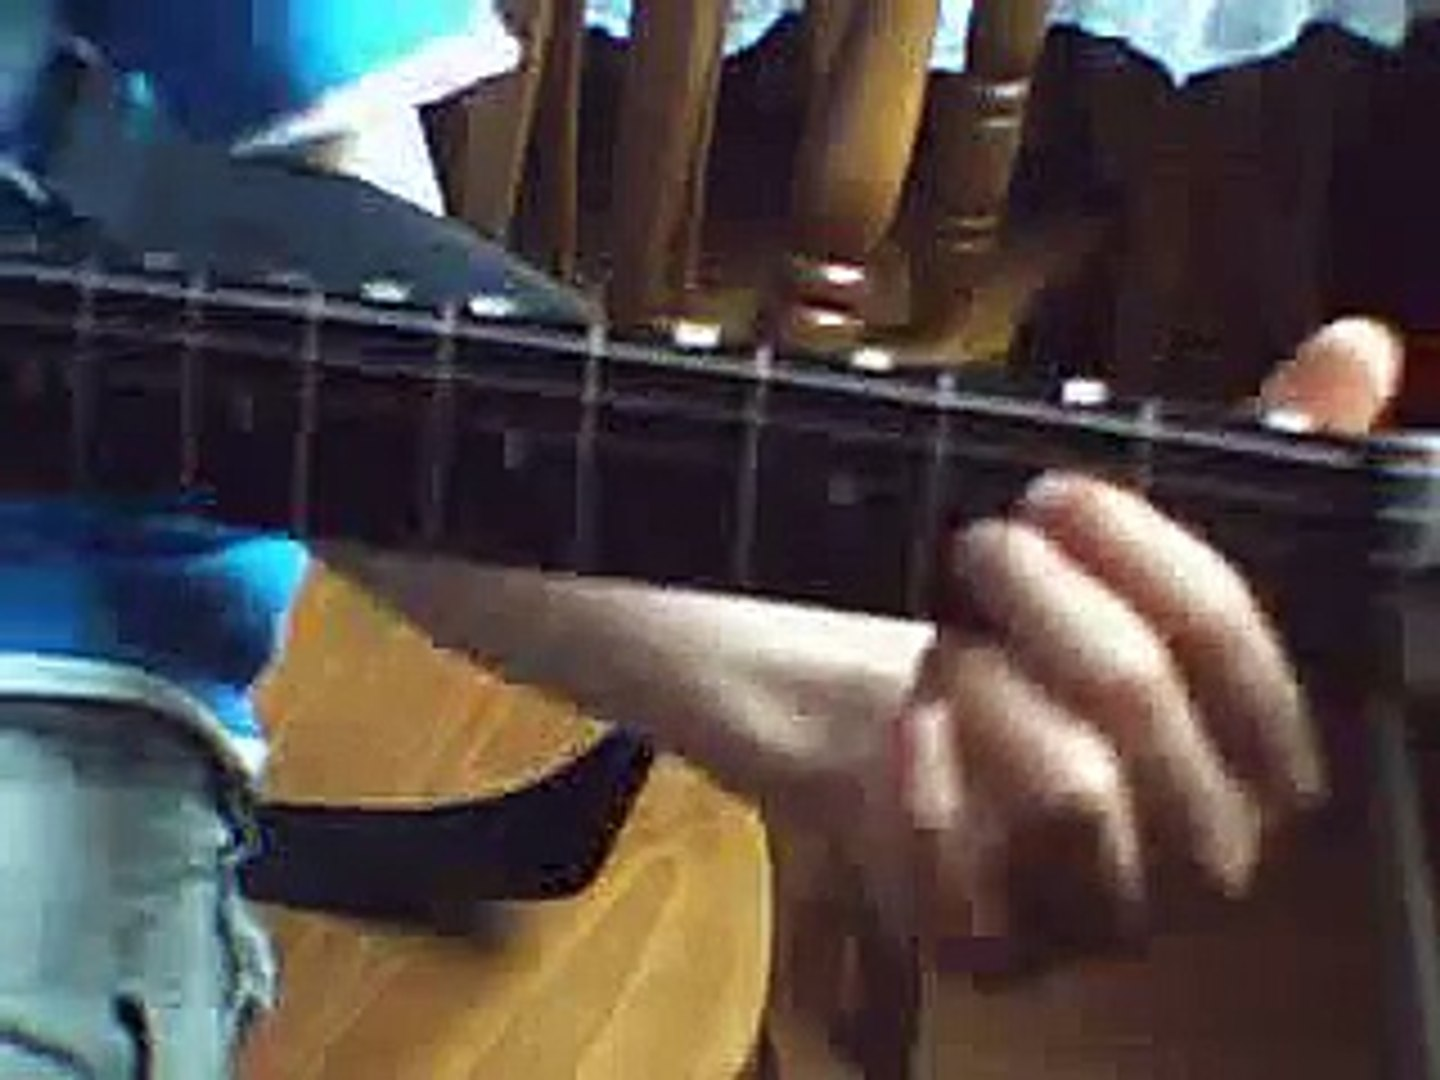 learn guitar with ciarian : how to play live wire